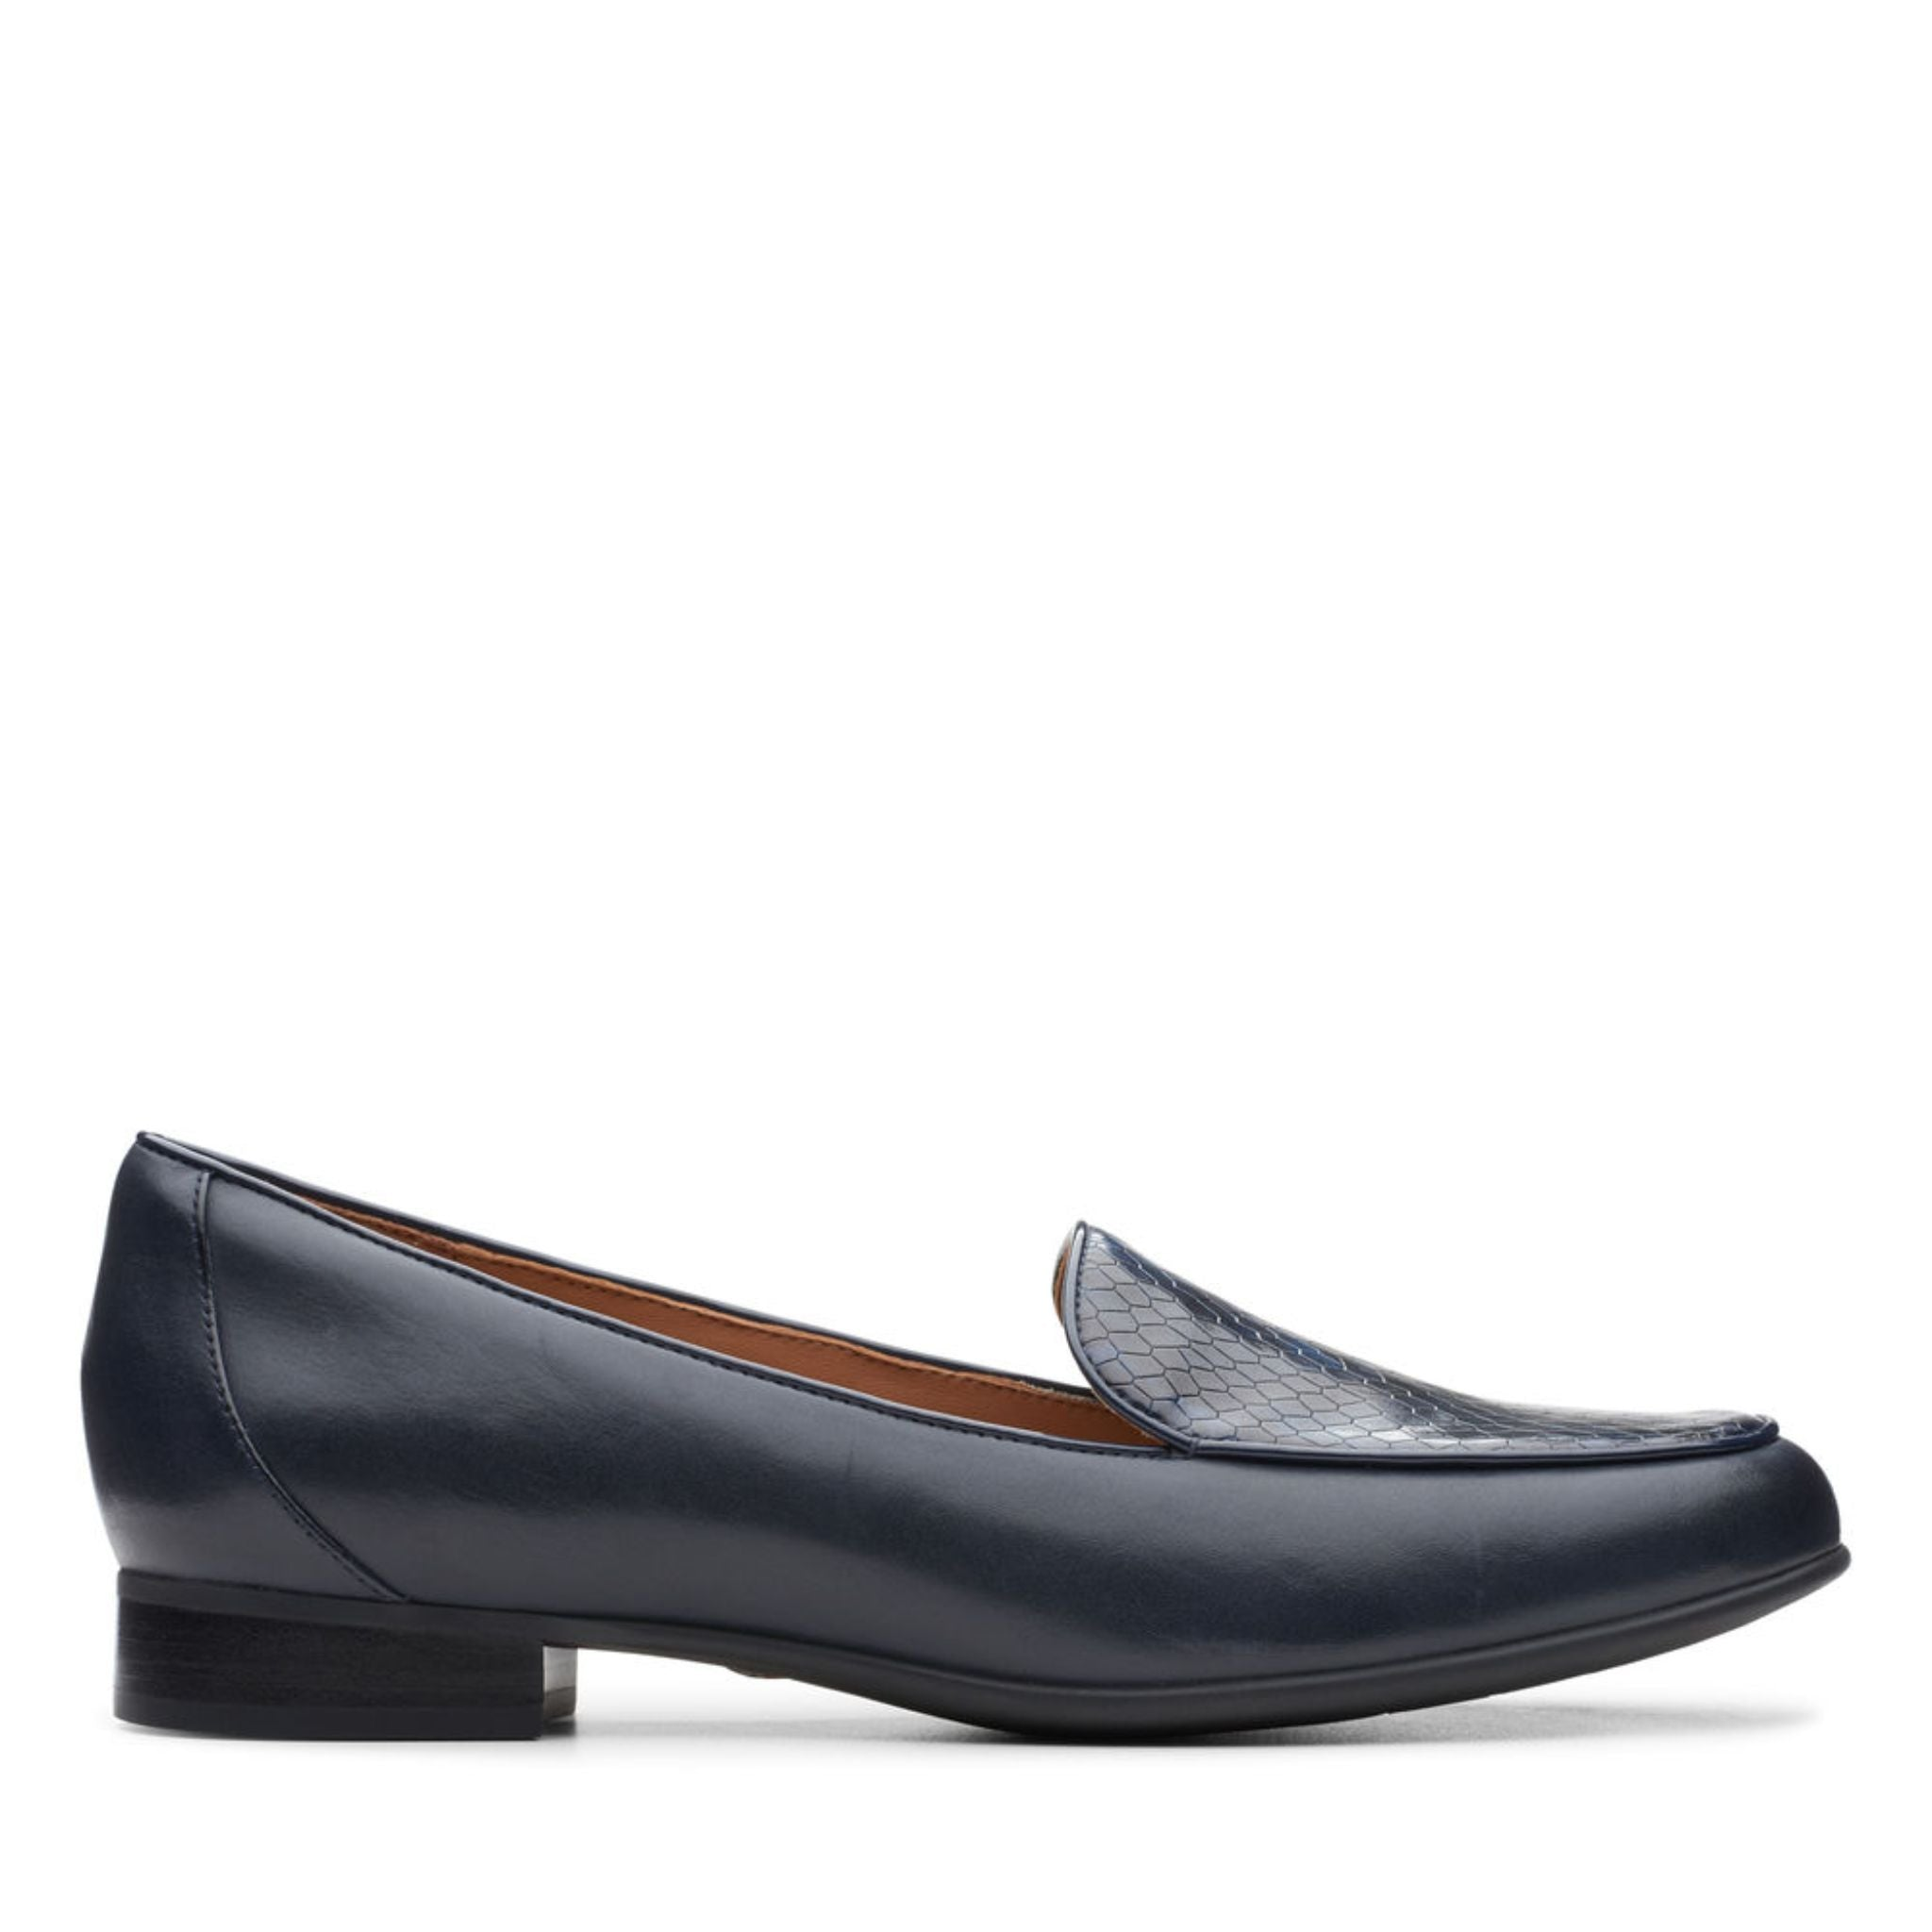 Clarks Un Blush Ease Navy Leather/Snake Combination